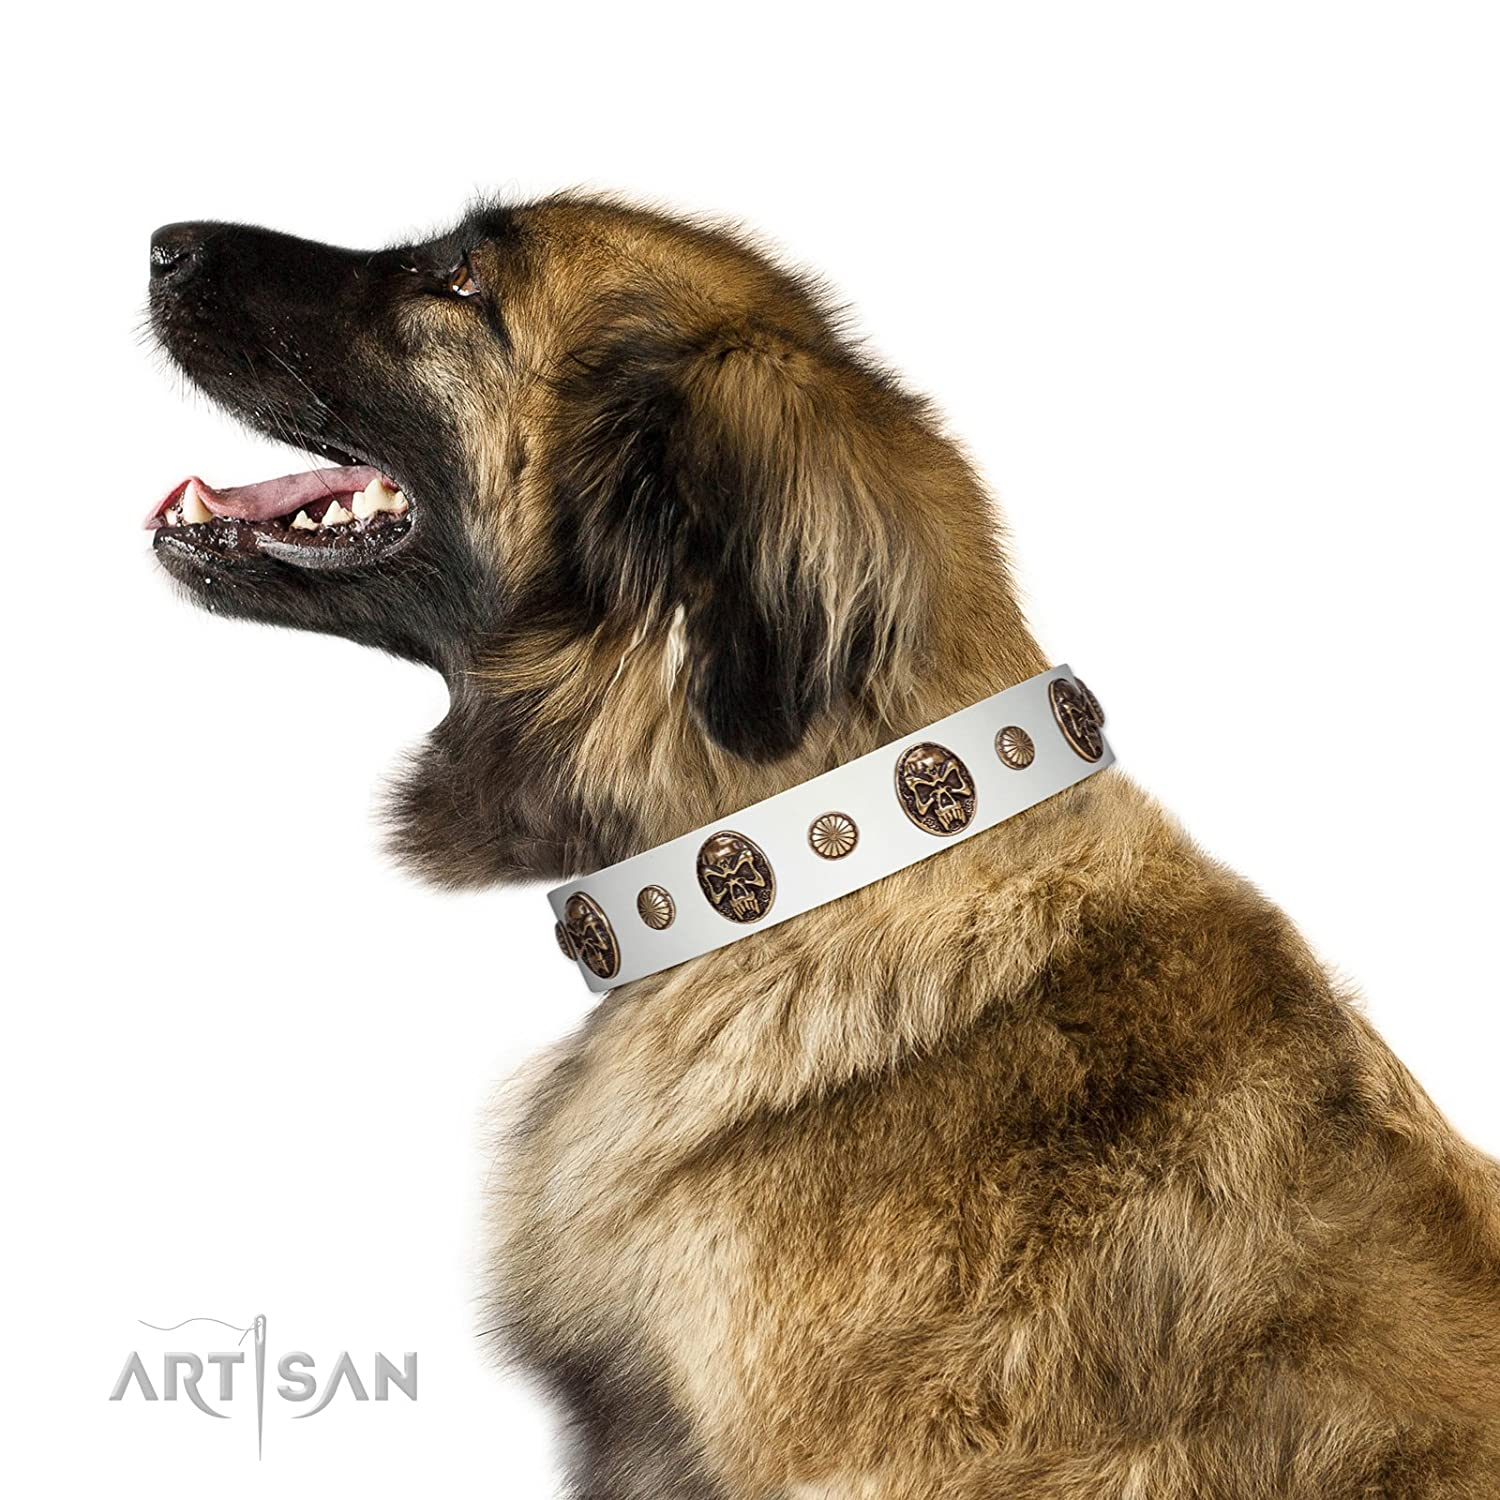 Fits for 34 inch (85cm) dog's neck size 34 inch FDT Artisan Fatal Beauty White Leather Dog Collar with Old Bronze-Like Studs and Oval Brooches 1 1 2 inch (40 cm) Wide Gift Box Included